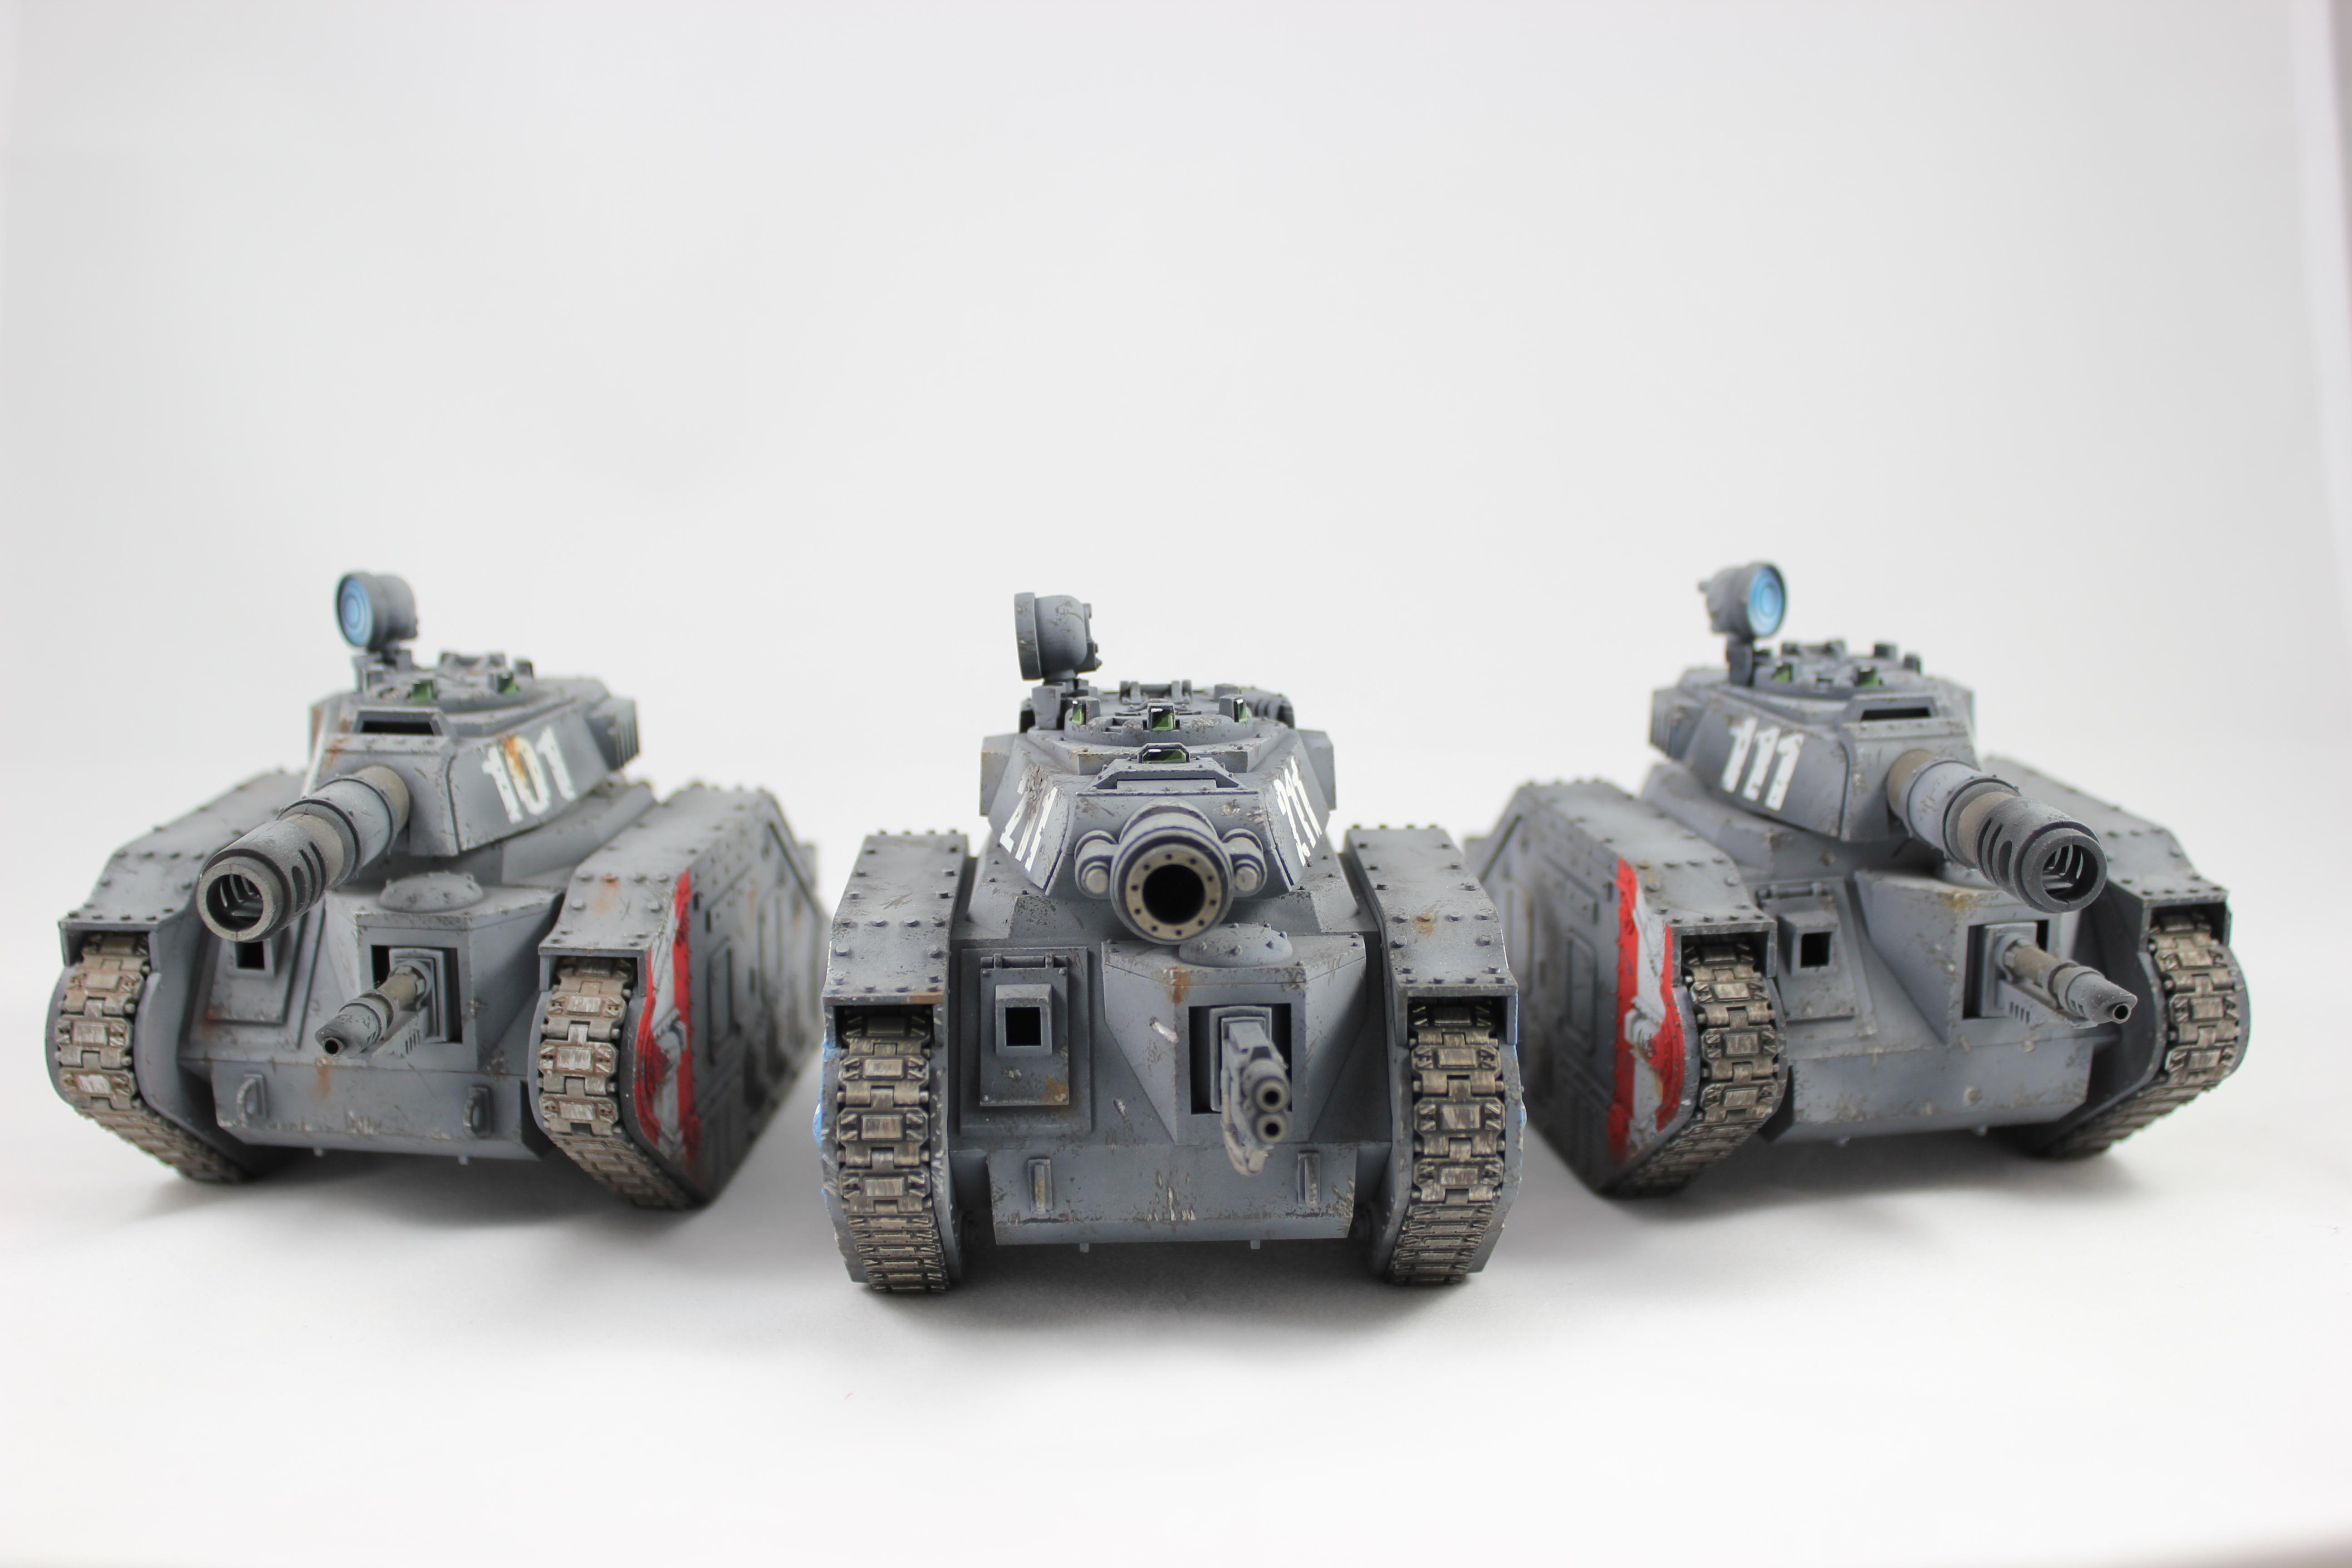 Airbrush, Armor, Camouflage, Cities Of Death, Guard, Imperial Guard, Leman Russ, Scouts, Sentinel, Tank, Urban